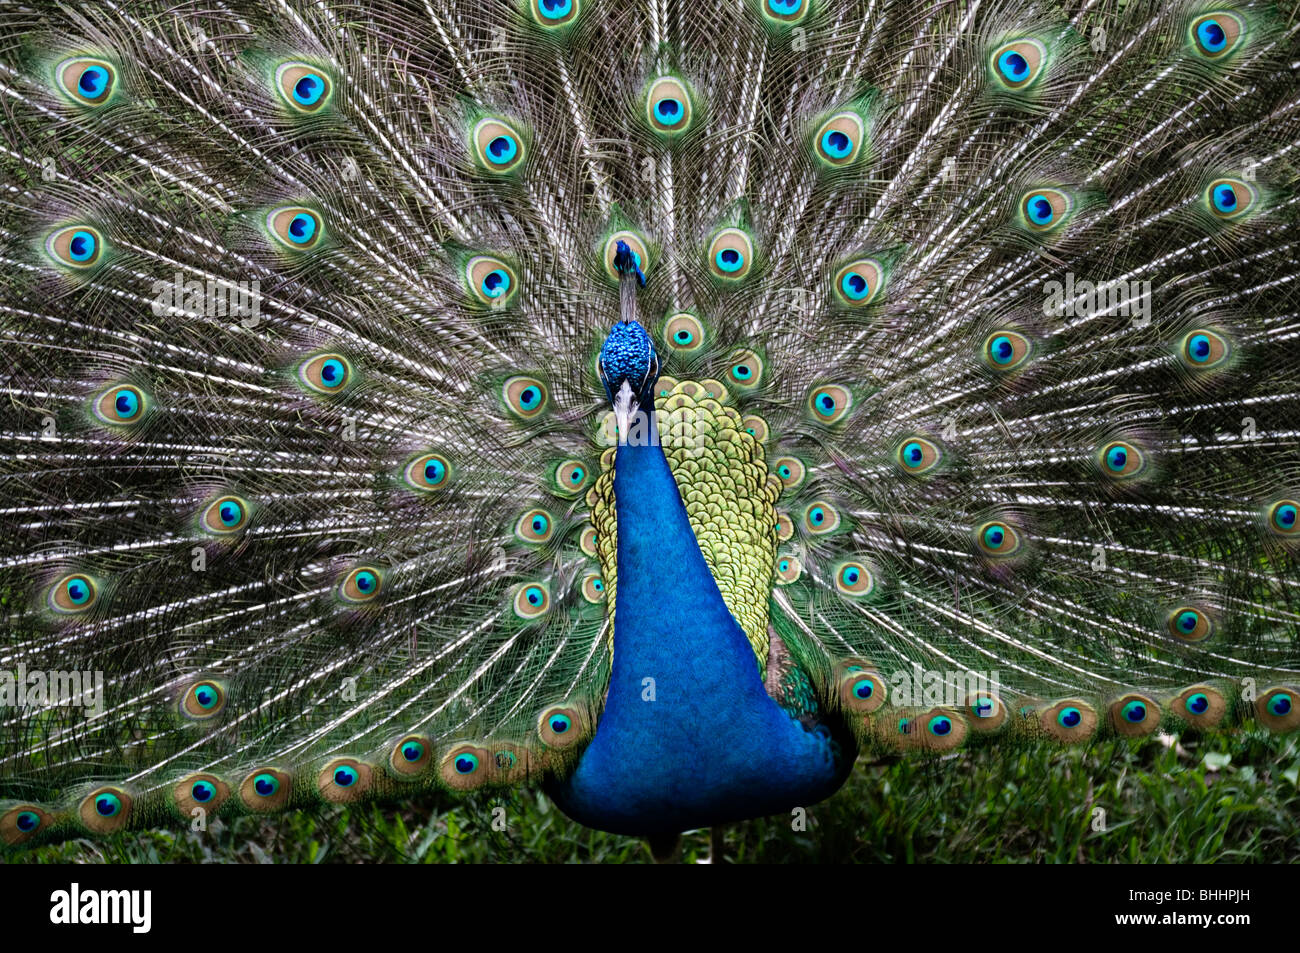 Closeup of a peacock with feathers fully extended. - Stock Image